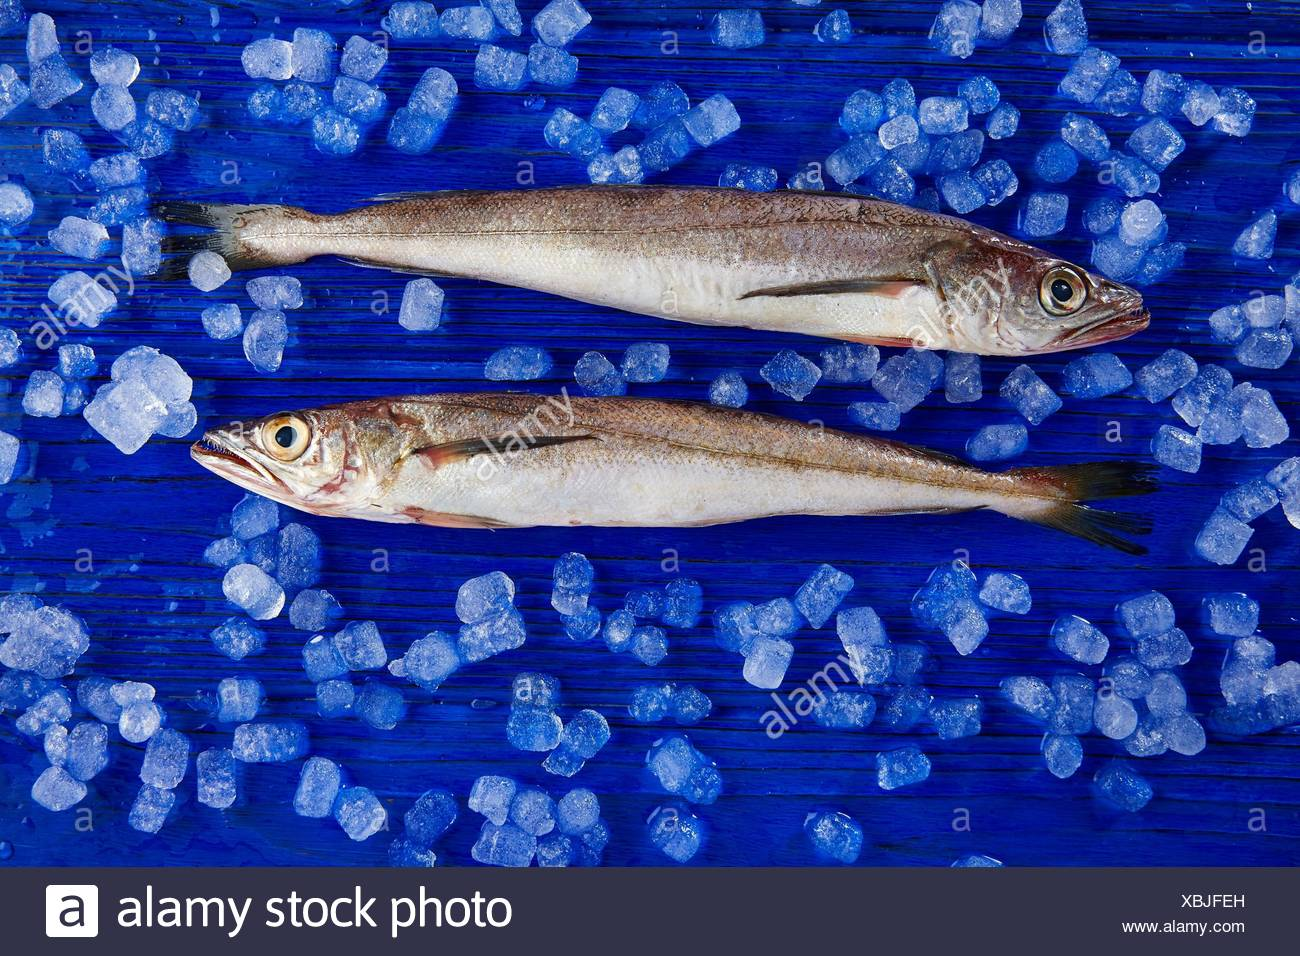 Hake fish on ice side view and blue table. - Stock Image